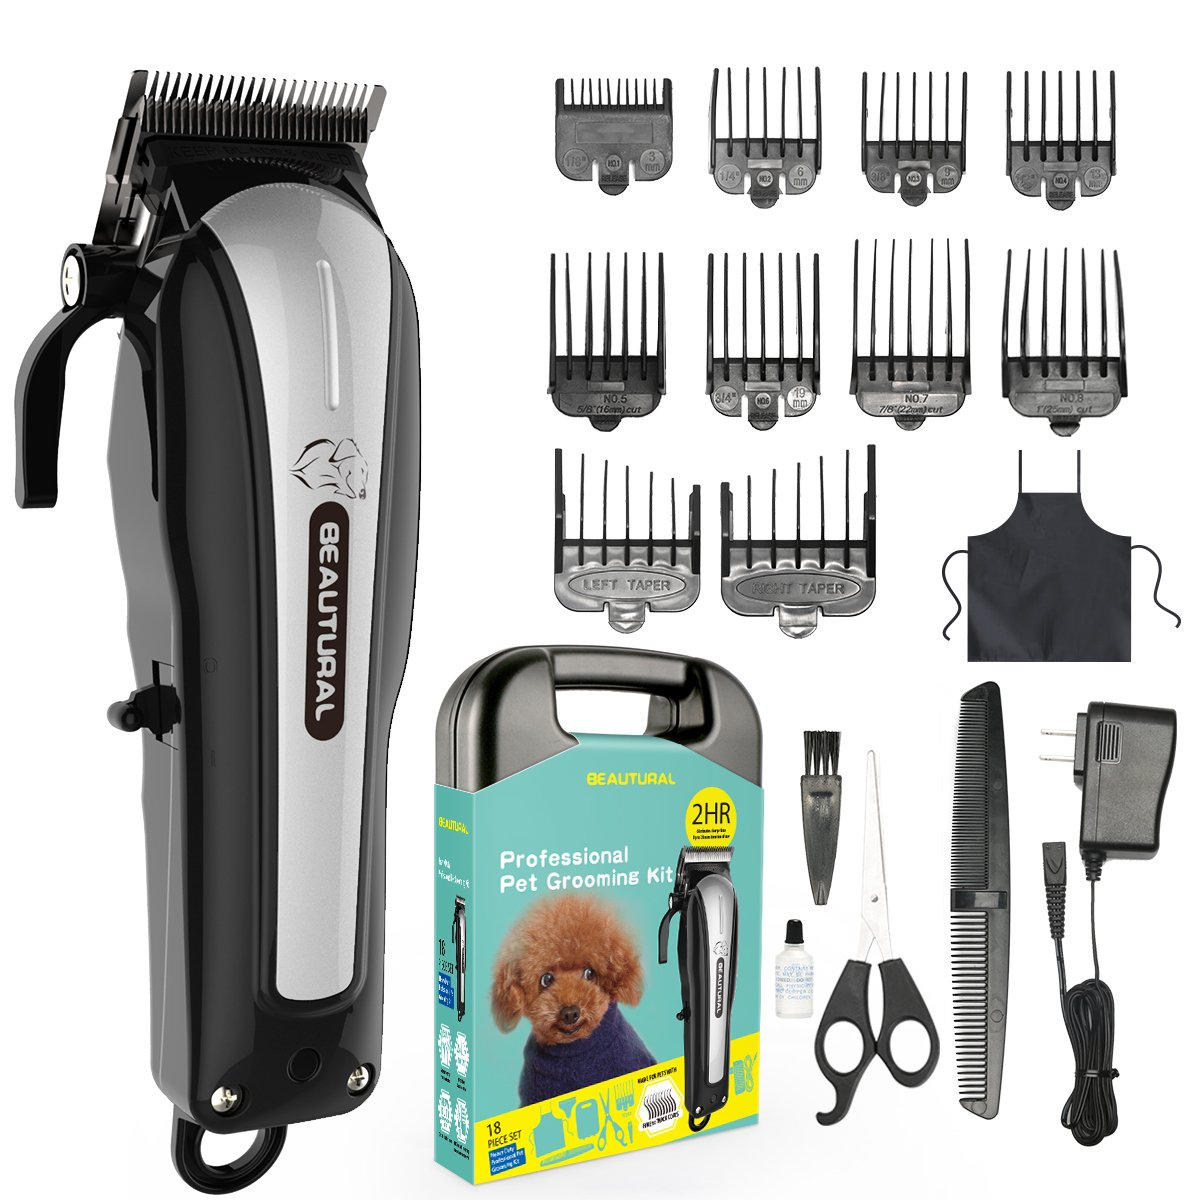 Beautural Professional Cordless Pet Grooming Clipper Kit, Low Noise Rechargeable Dog Cat Hair Trimmer Combs, Scissors, Styling Apron, Storage Case